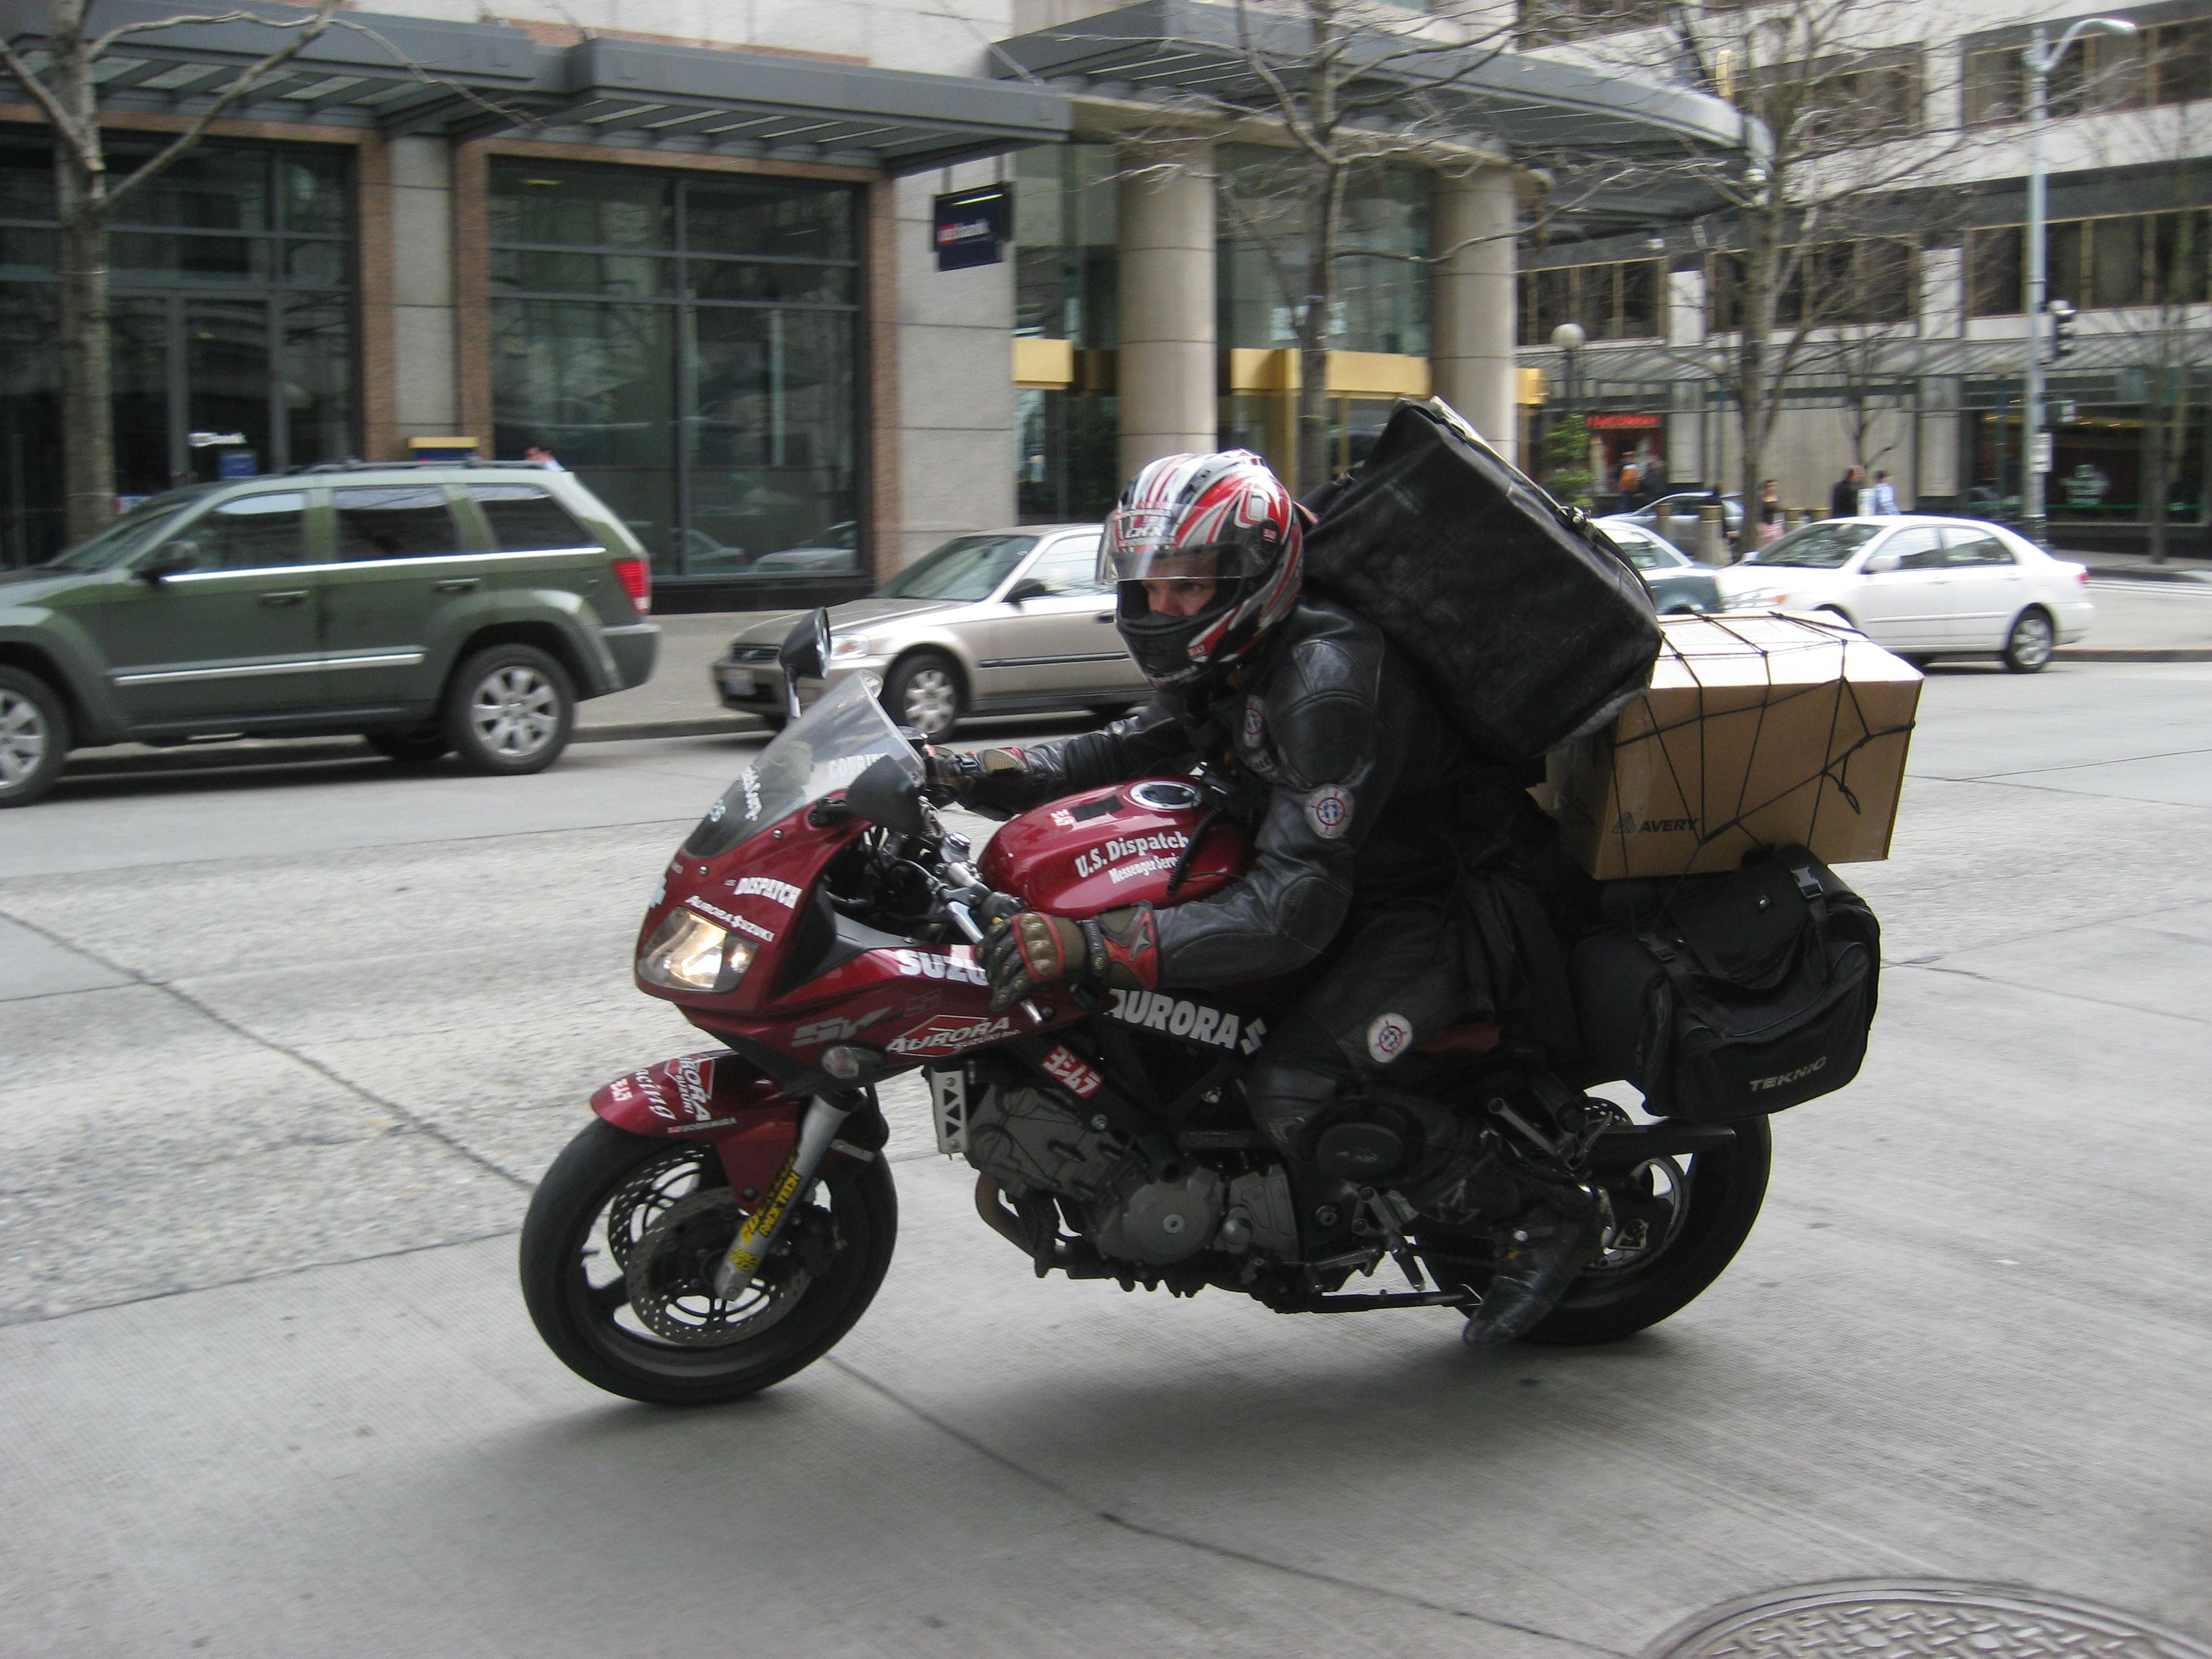 Motorbike delivery service (With images) Sport touring